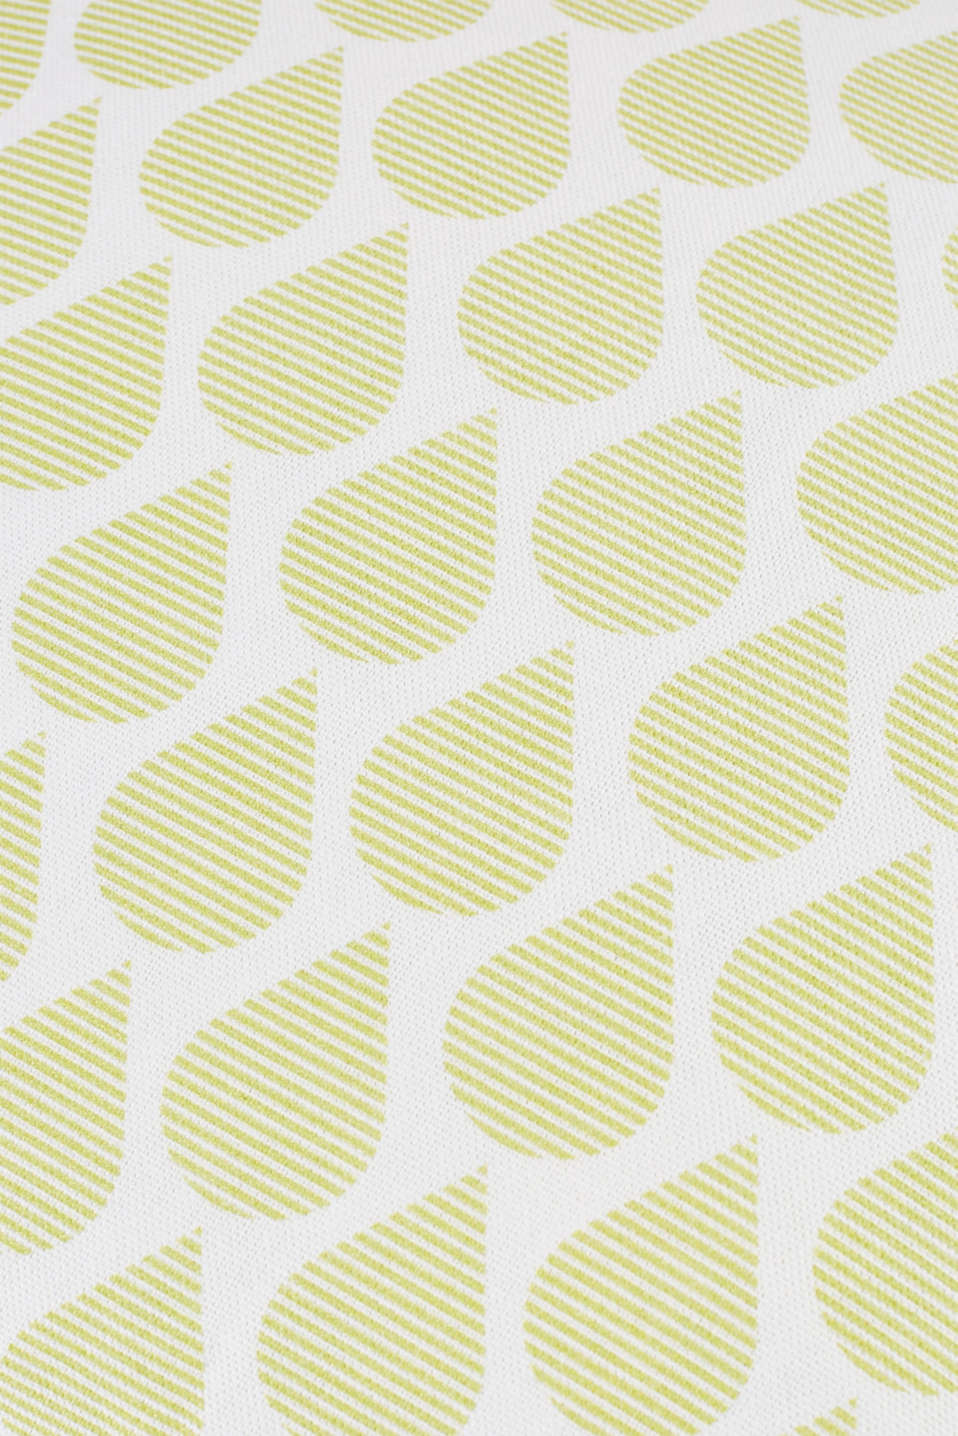 Cushion cover with digital teardrop print, LIME, detail image number 2